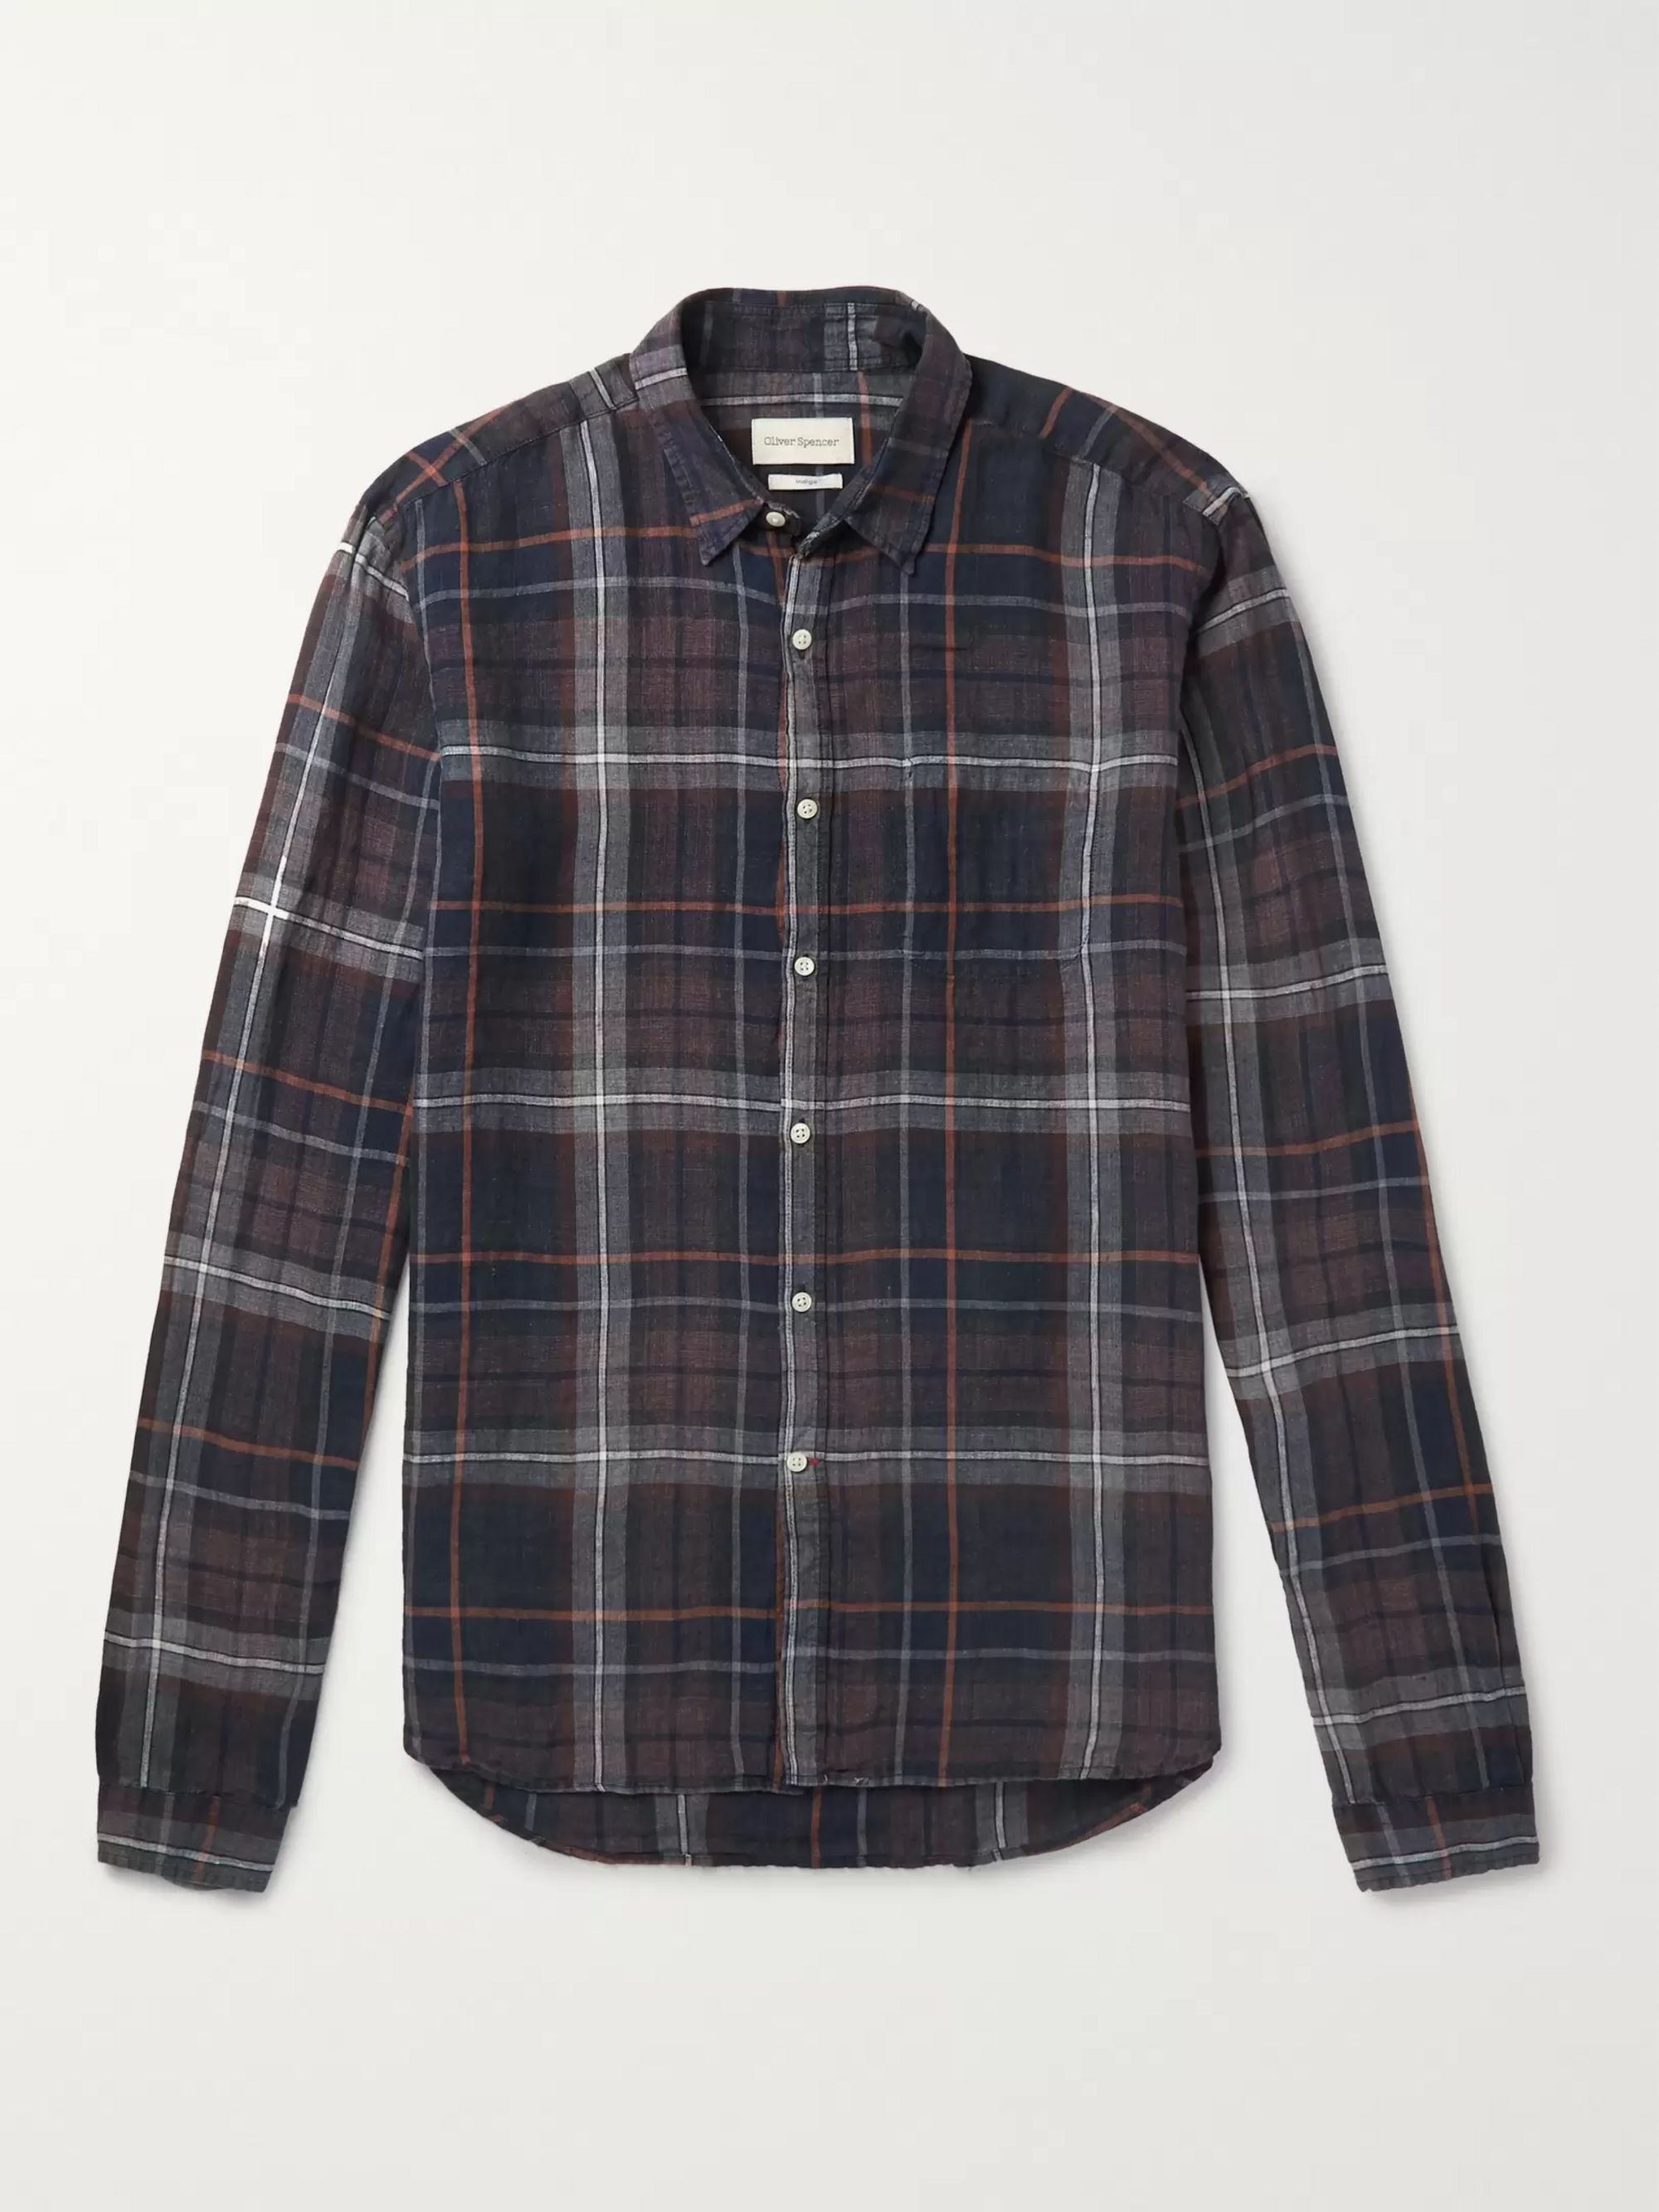 Oliver Spencer New York Special Checked Linen Shirt